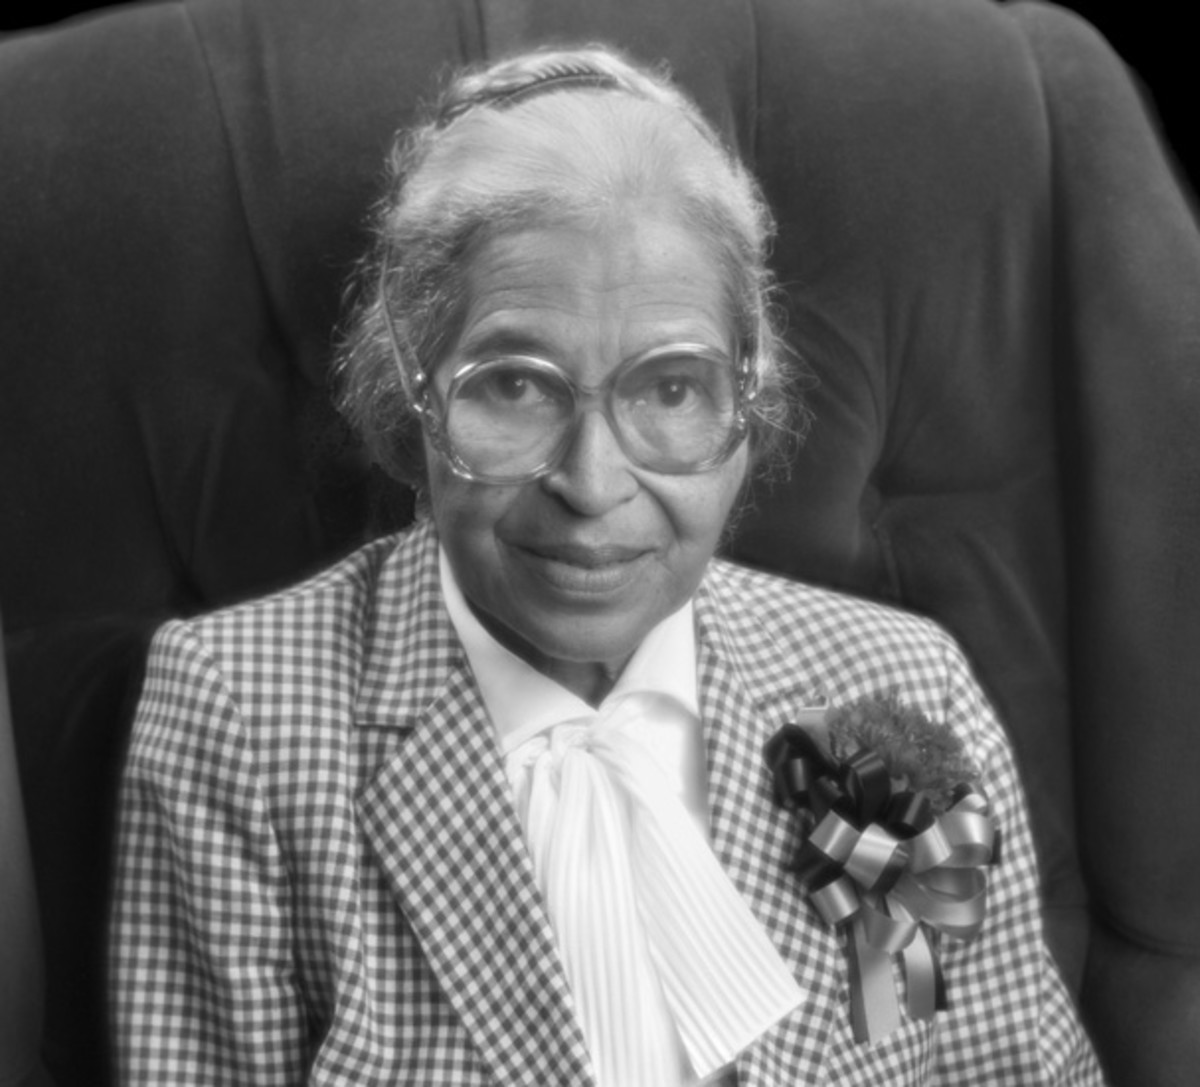 rosa parks honored in quotes com rosa parks in 1994 photo mickey adair getty images